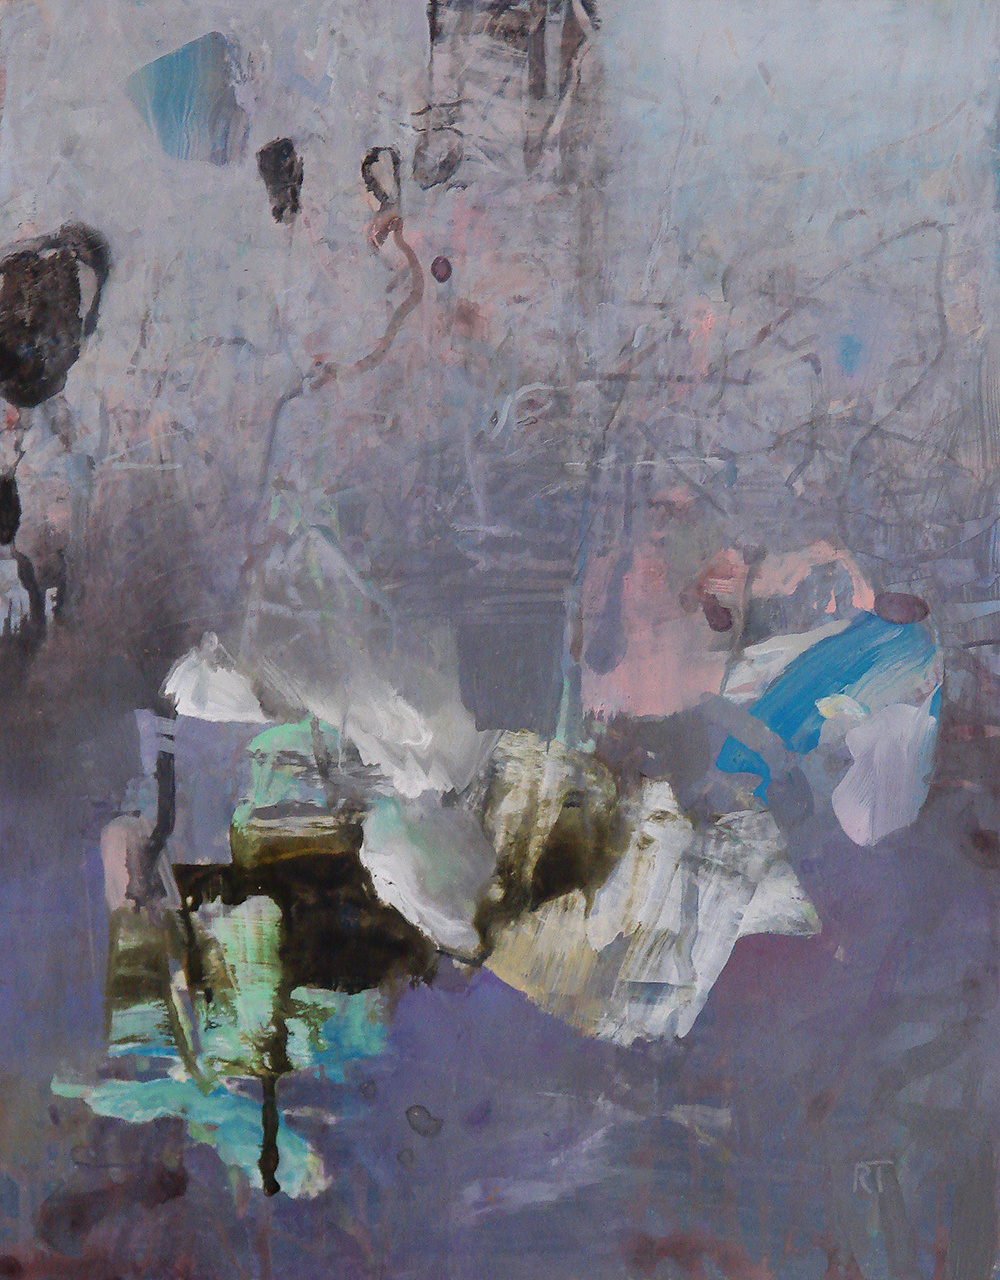 - Tipton's landscapes and methods are deconstructed even further in his abstract works. The joy of playing with paint--gestures of line, splotches, and washes capturing the atmosphere of a day's walk through the woods--invest studio creations with lived experience.